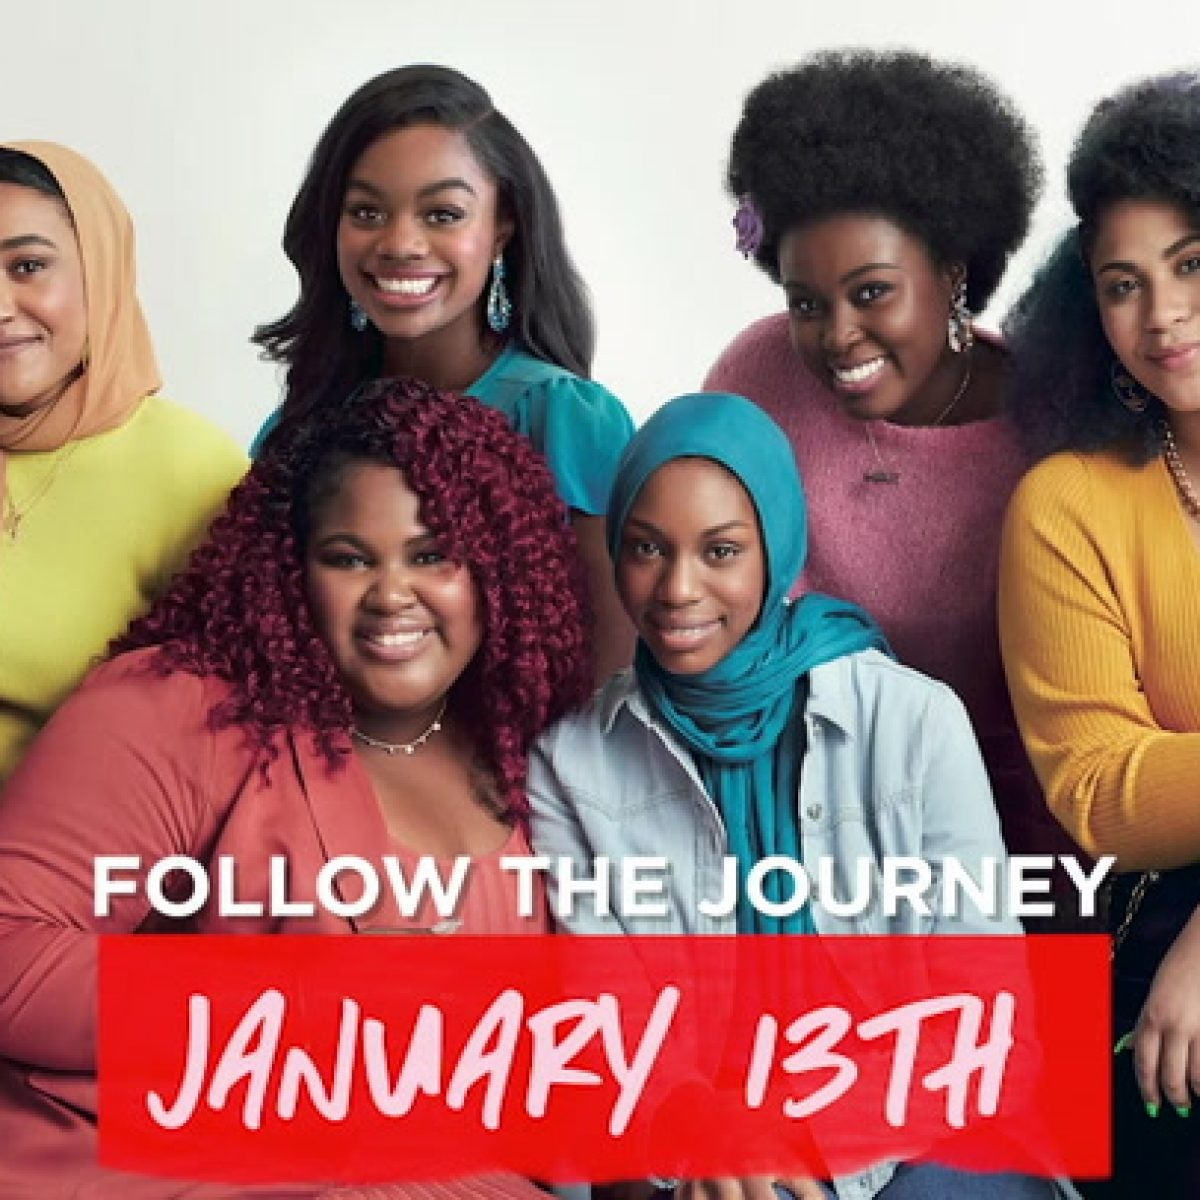 Meet the Girls! We are back and better than ever for Season 2 of Ulta Beauty Beautiful Possibilities!